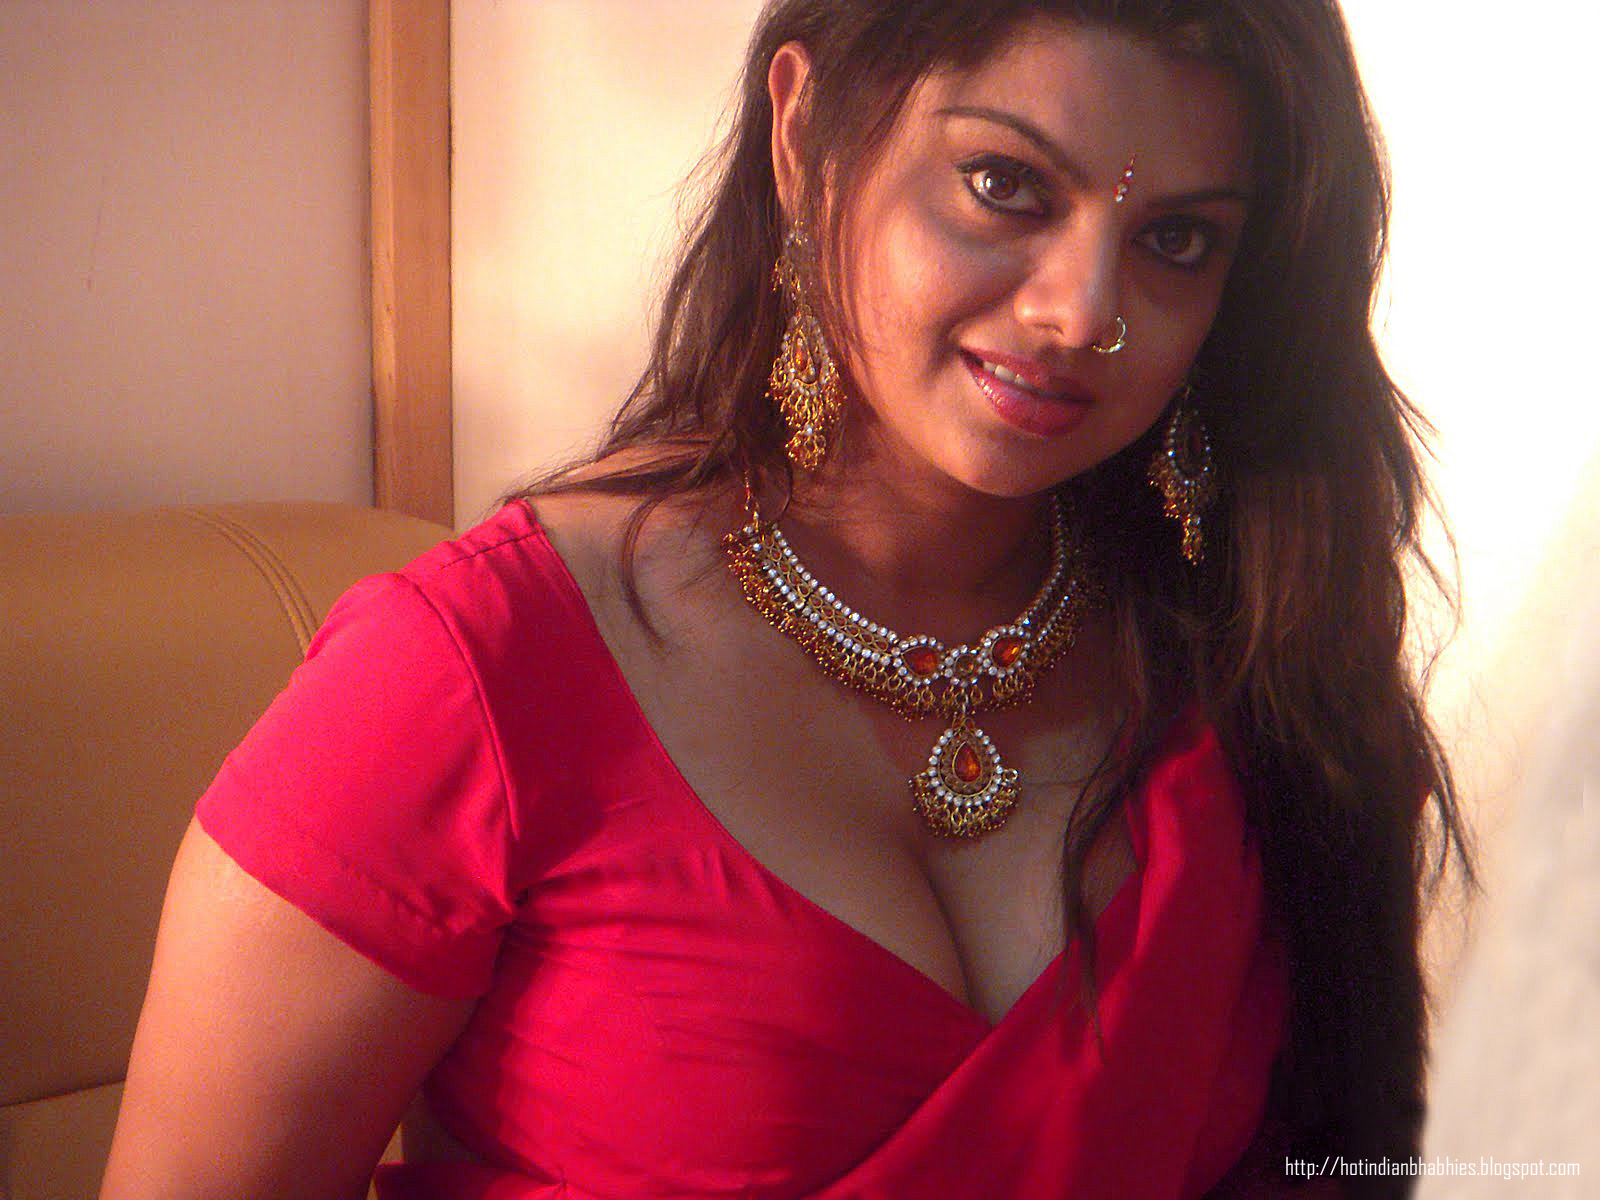 1 Swathi Varma Hot Photo gallery arabic tamil indian sexy babes house wife sex pictures bed room pictures nude pisture sari pictures big boobs tits pictures indian tamil big ass hot bikini Lingerie Football League Tits.